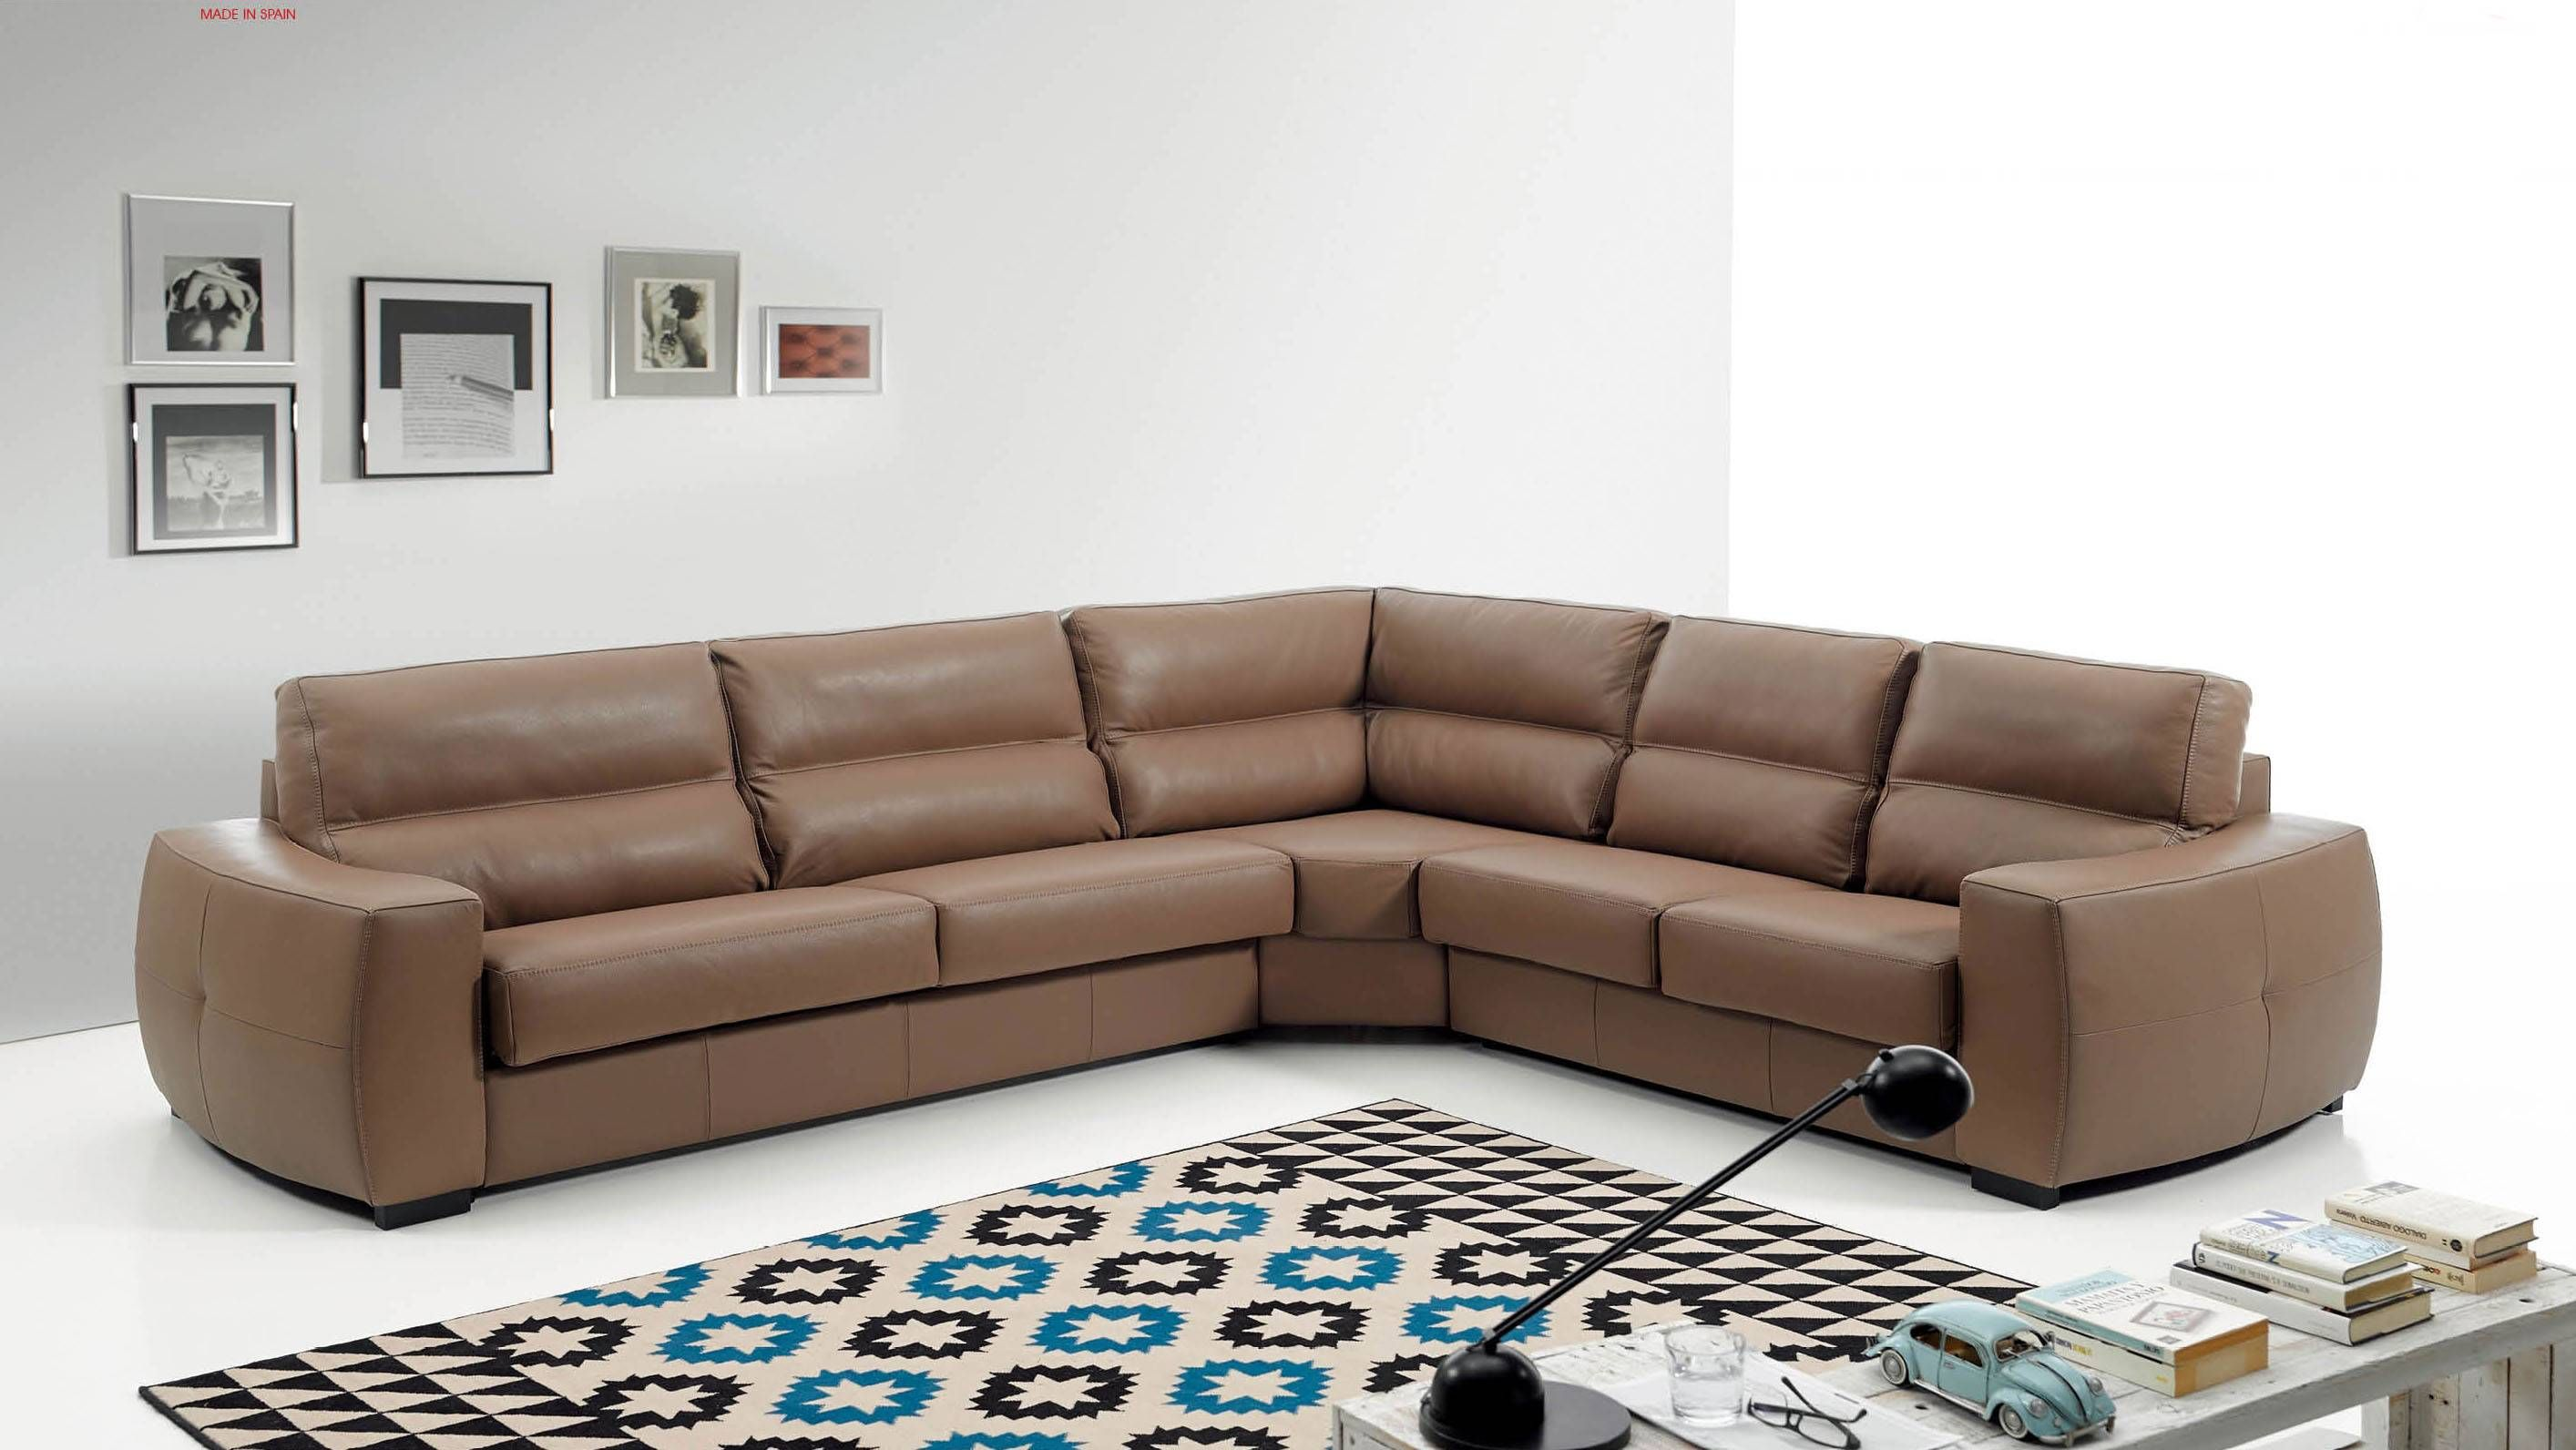 table design inspiration text small sectional sofa sleeper design inspiration architecture rh elizadiaries com discount sofa sleeper design inspiration furniture for your